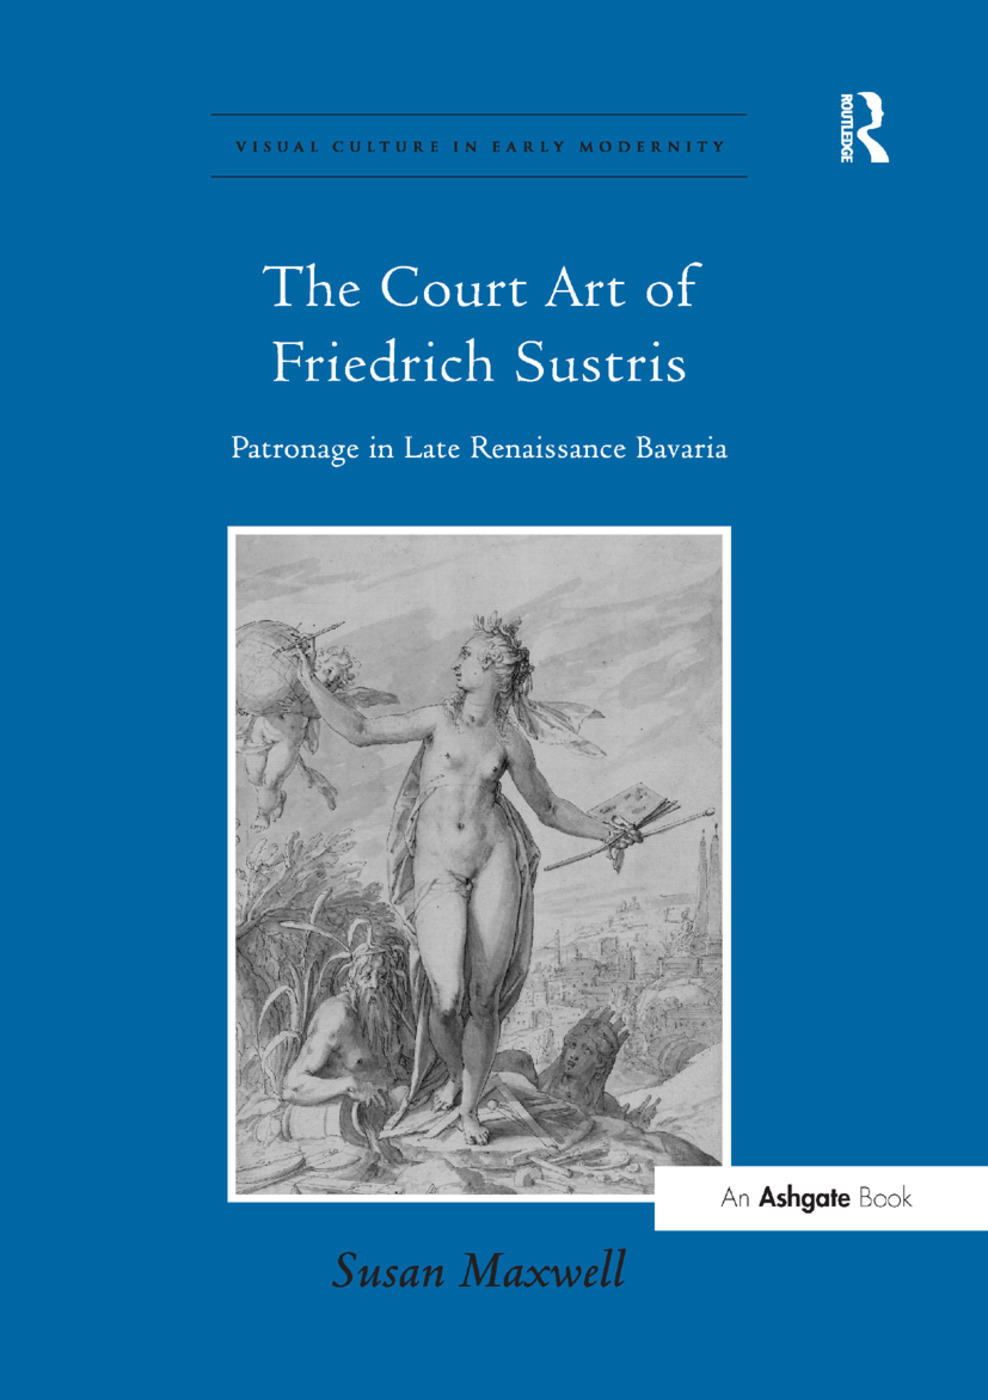 The Court Art of Friedrich Sustris: Patronage in Late Renaissance Bavaria book cover